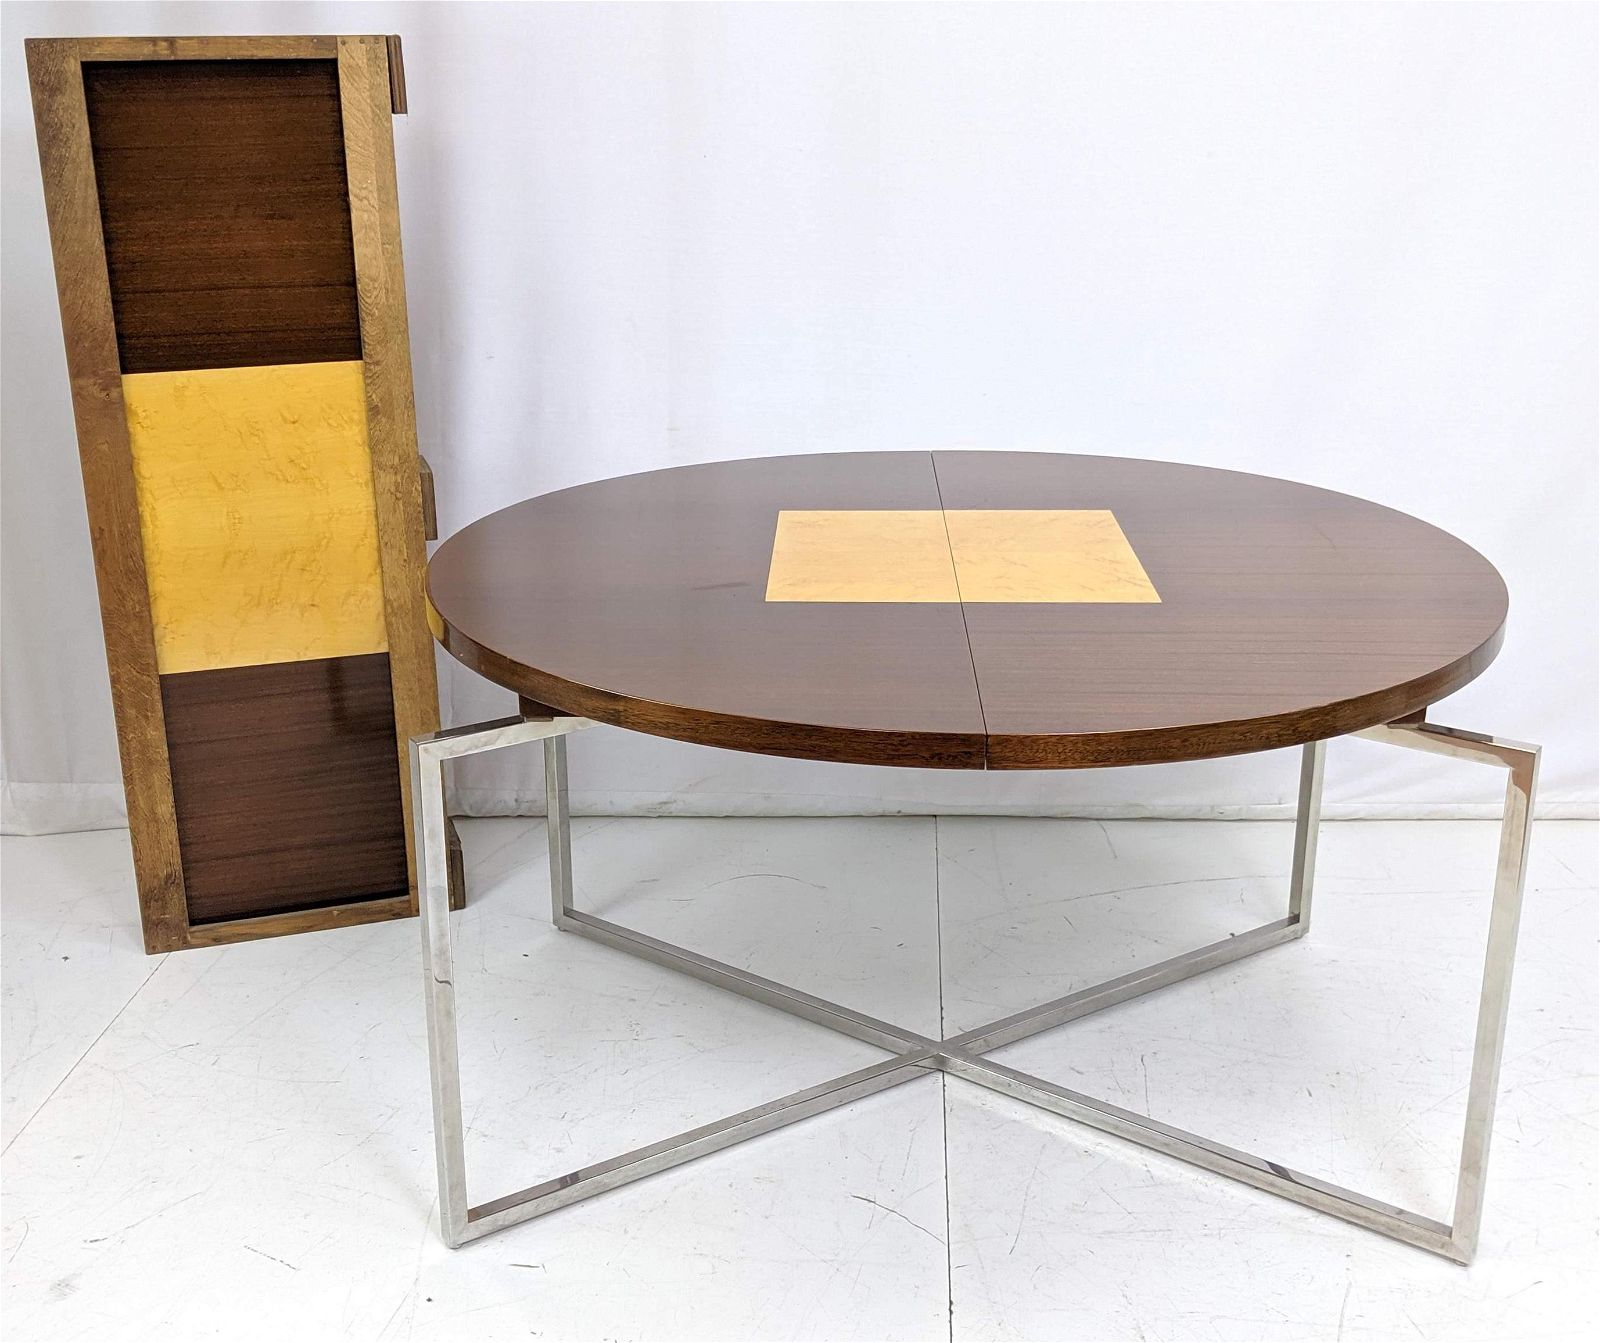 TOMMI PARZINGER Dining Table. Round Top on Square